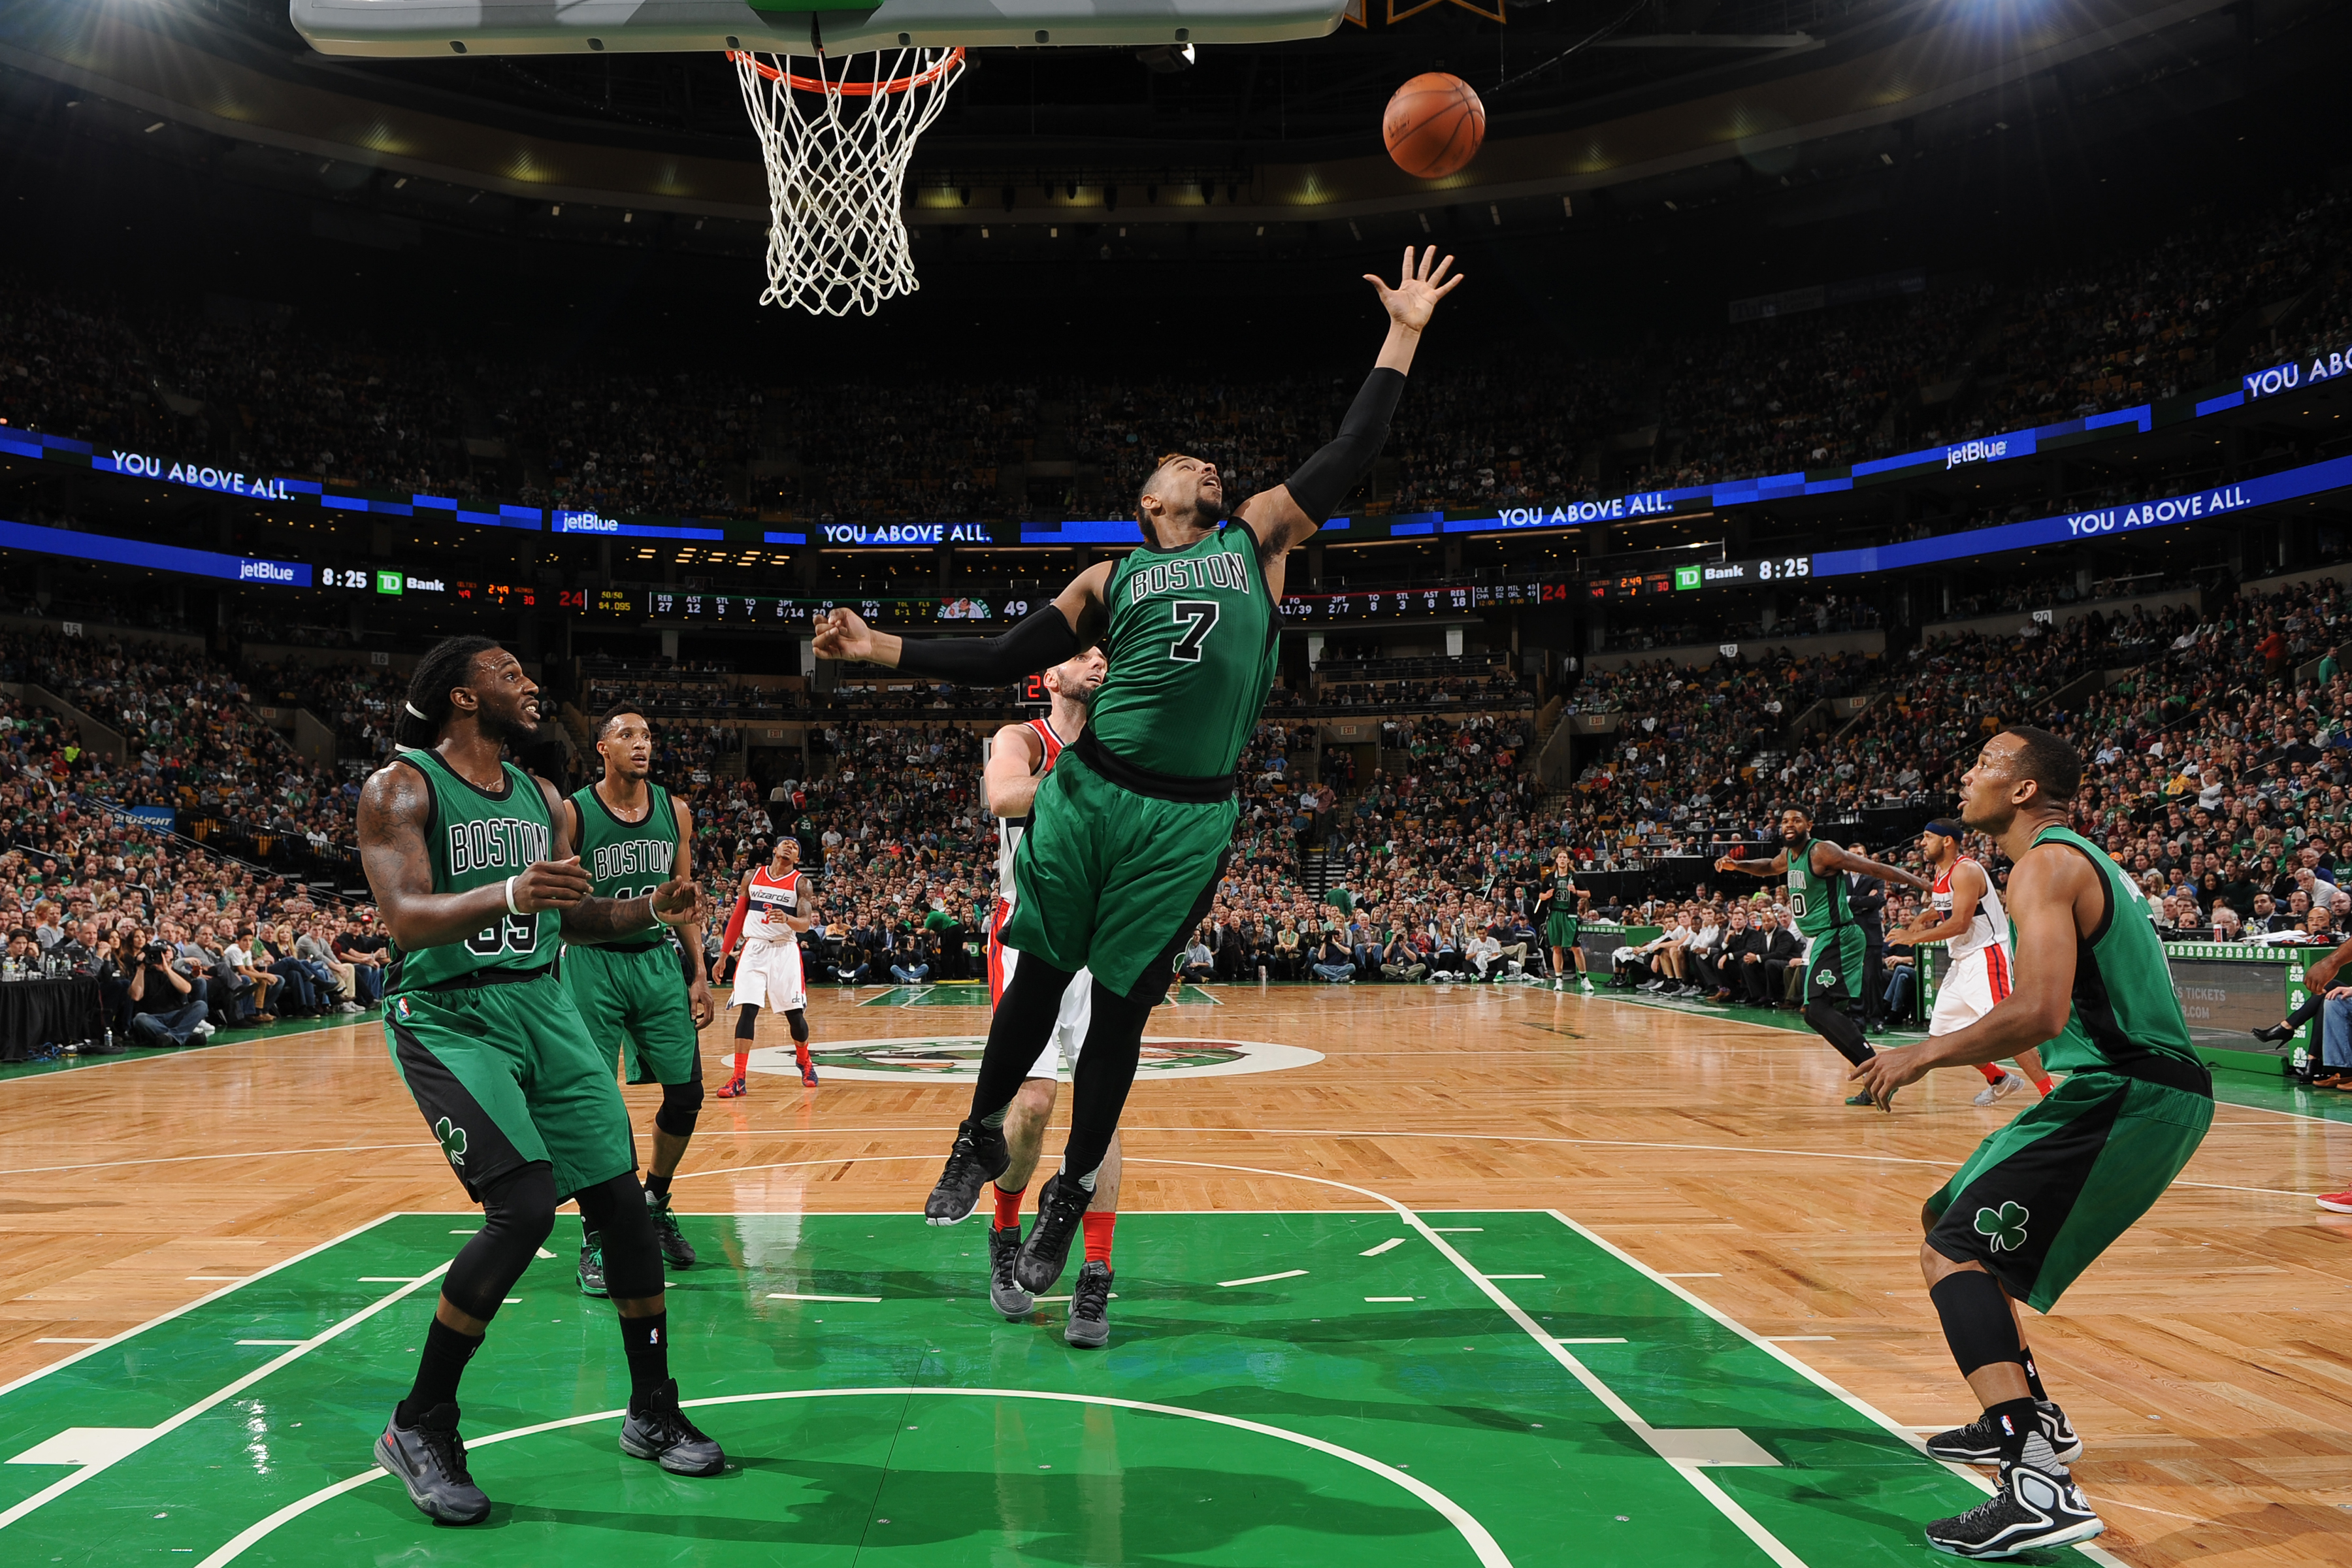 BOSTON, MA - NOVEMBER 27: Jared Sullinger #7 of the Boston Celtics grabs the rebound against the Washington Wizards during the game on November 27, 2015 at the TD Garden in Boston, Massachusetts.  (Photo by Brian Babineau/NBAE via Getty Images)